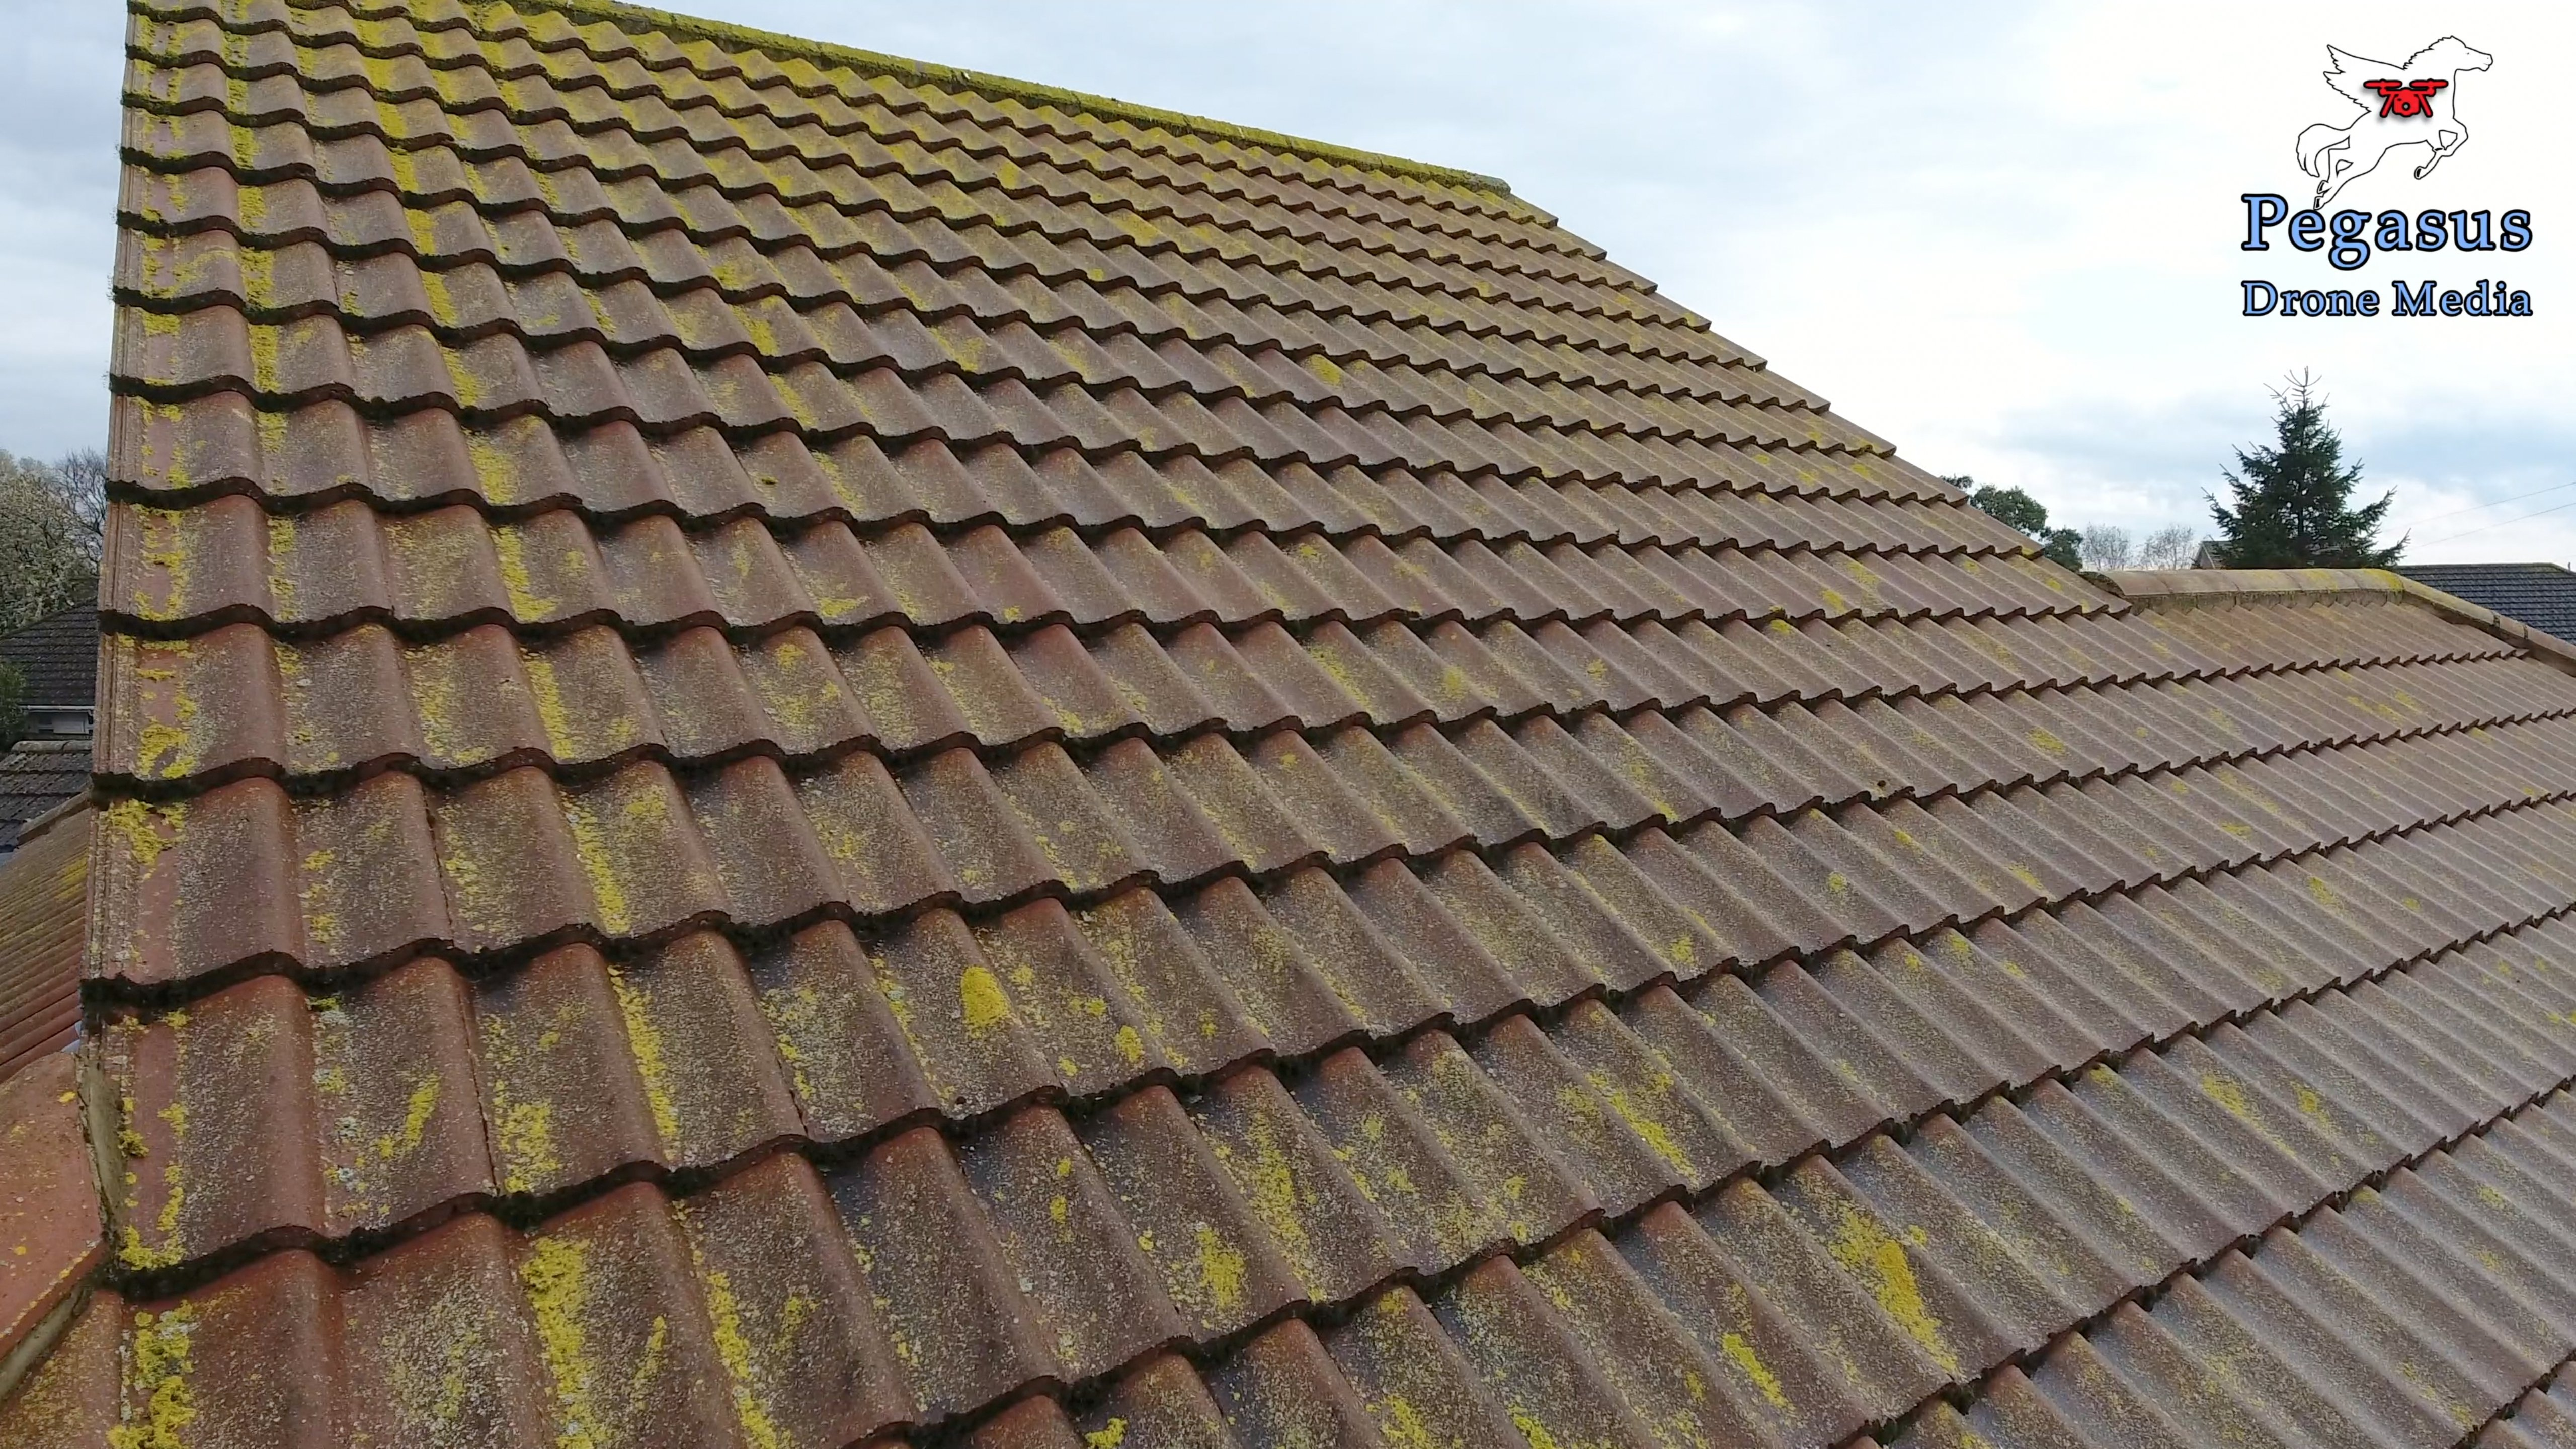 Pegasus Drone Media aerial videography and photography of roof tiles